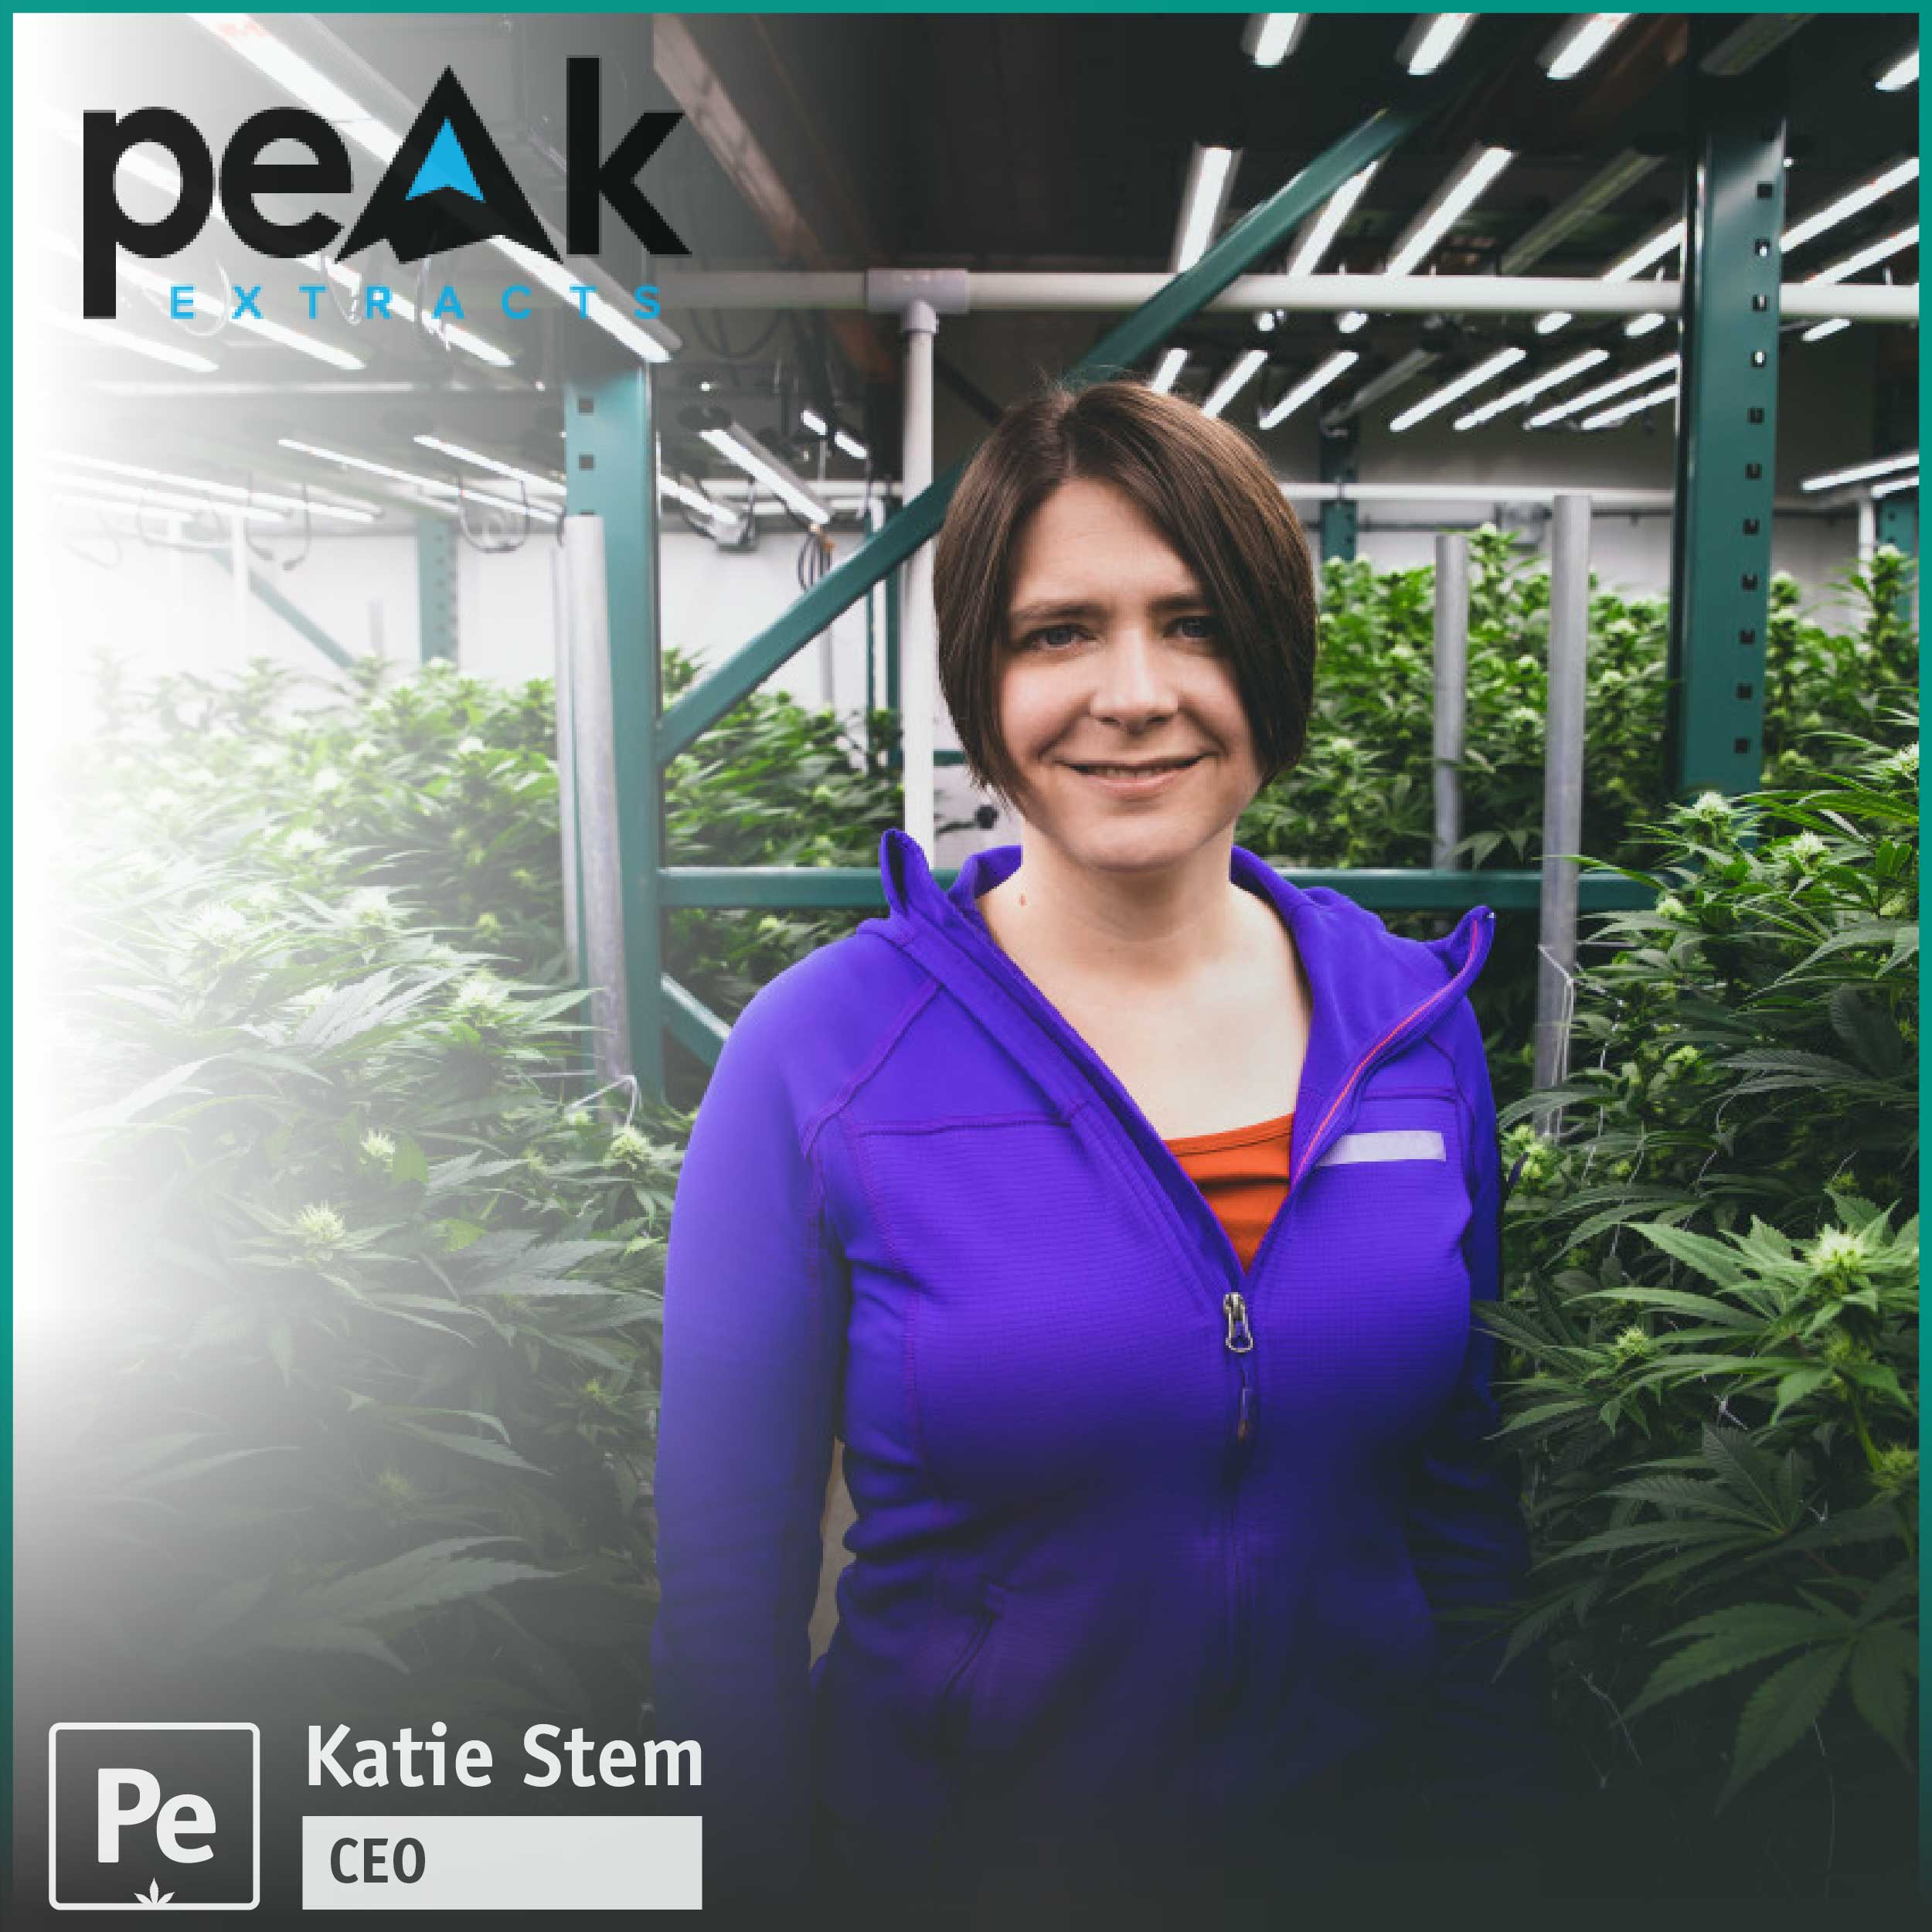 Katie Stem, CEO of Peak Extracts, a cannabis infused edible and extract business